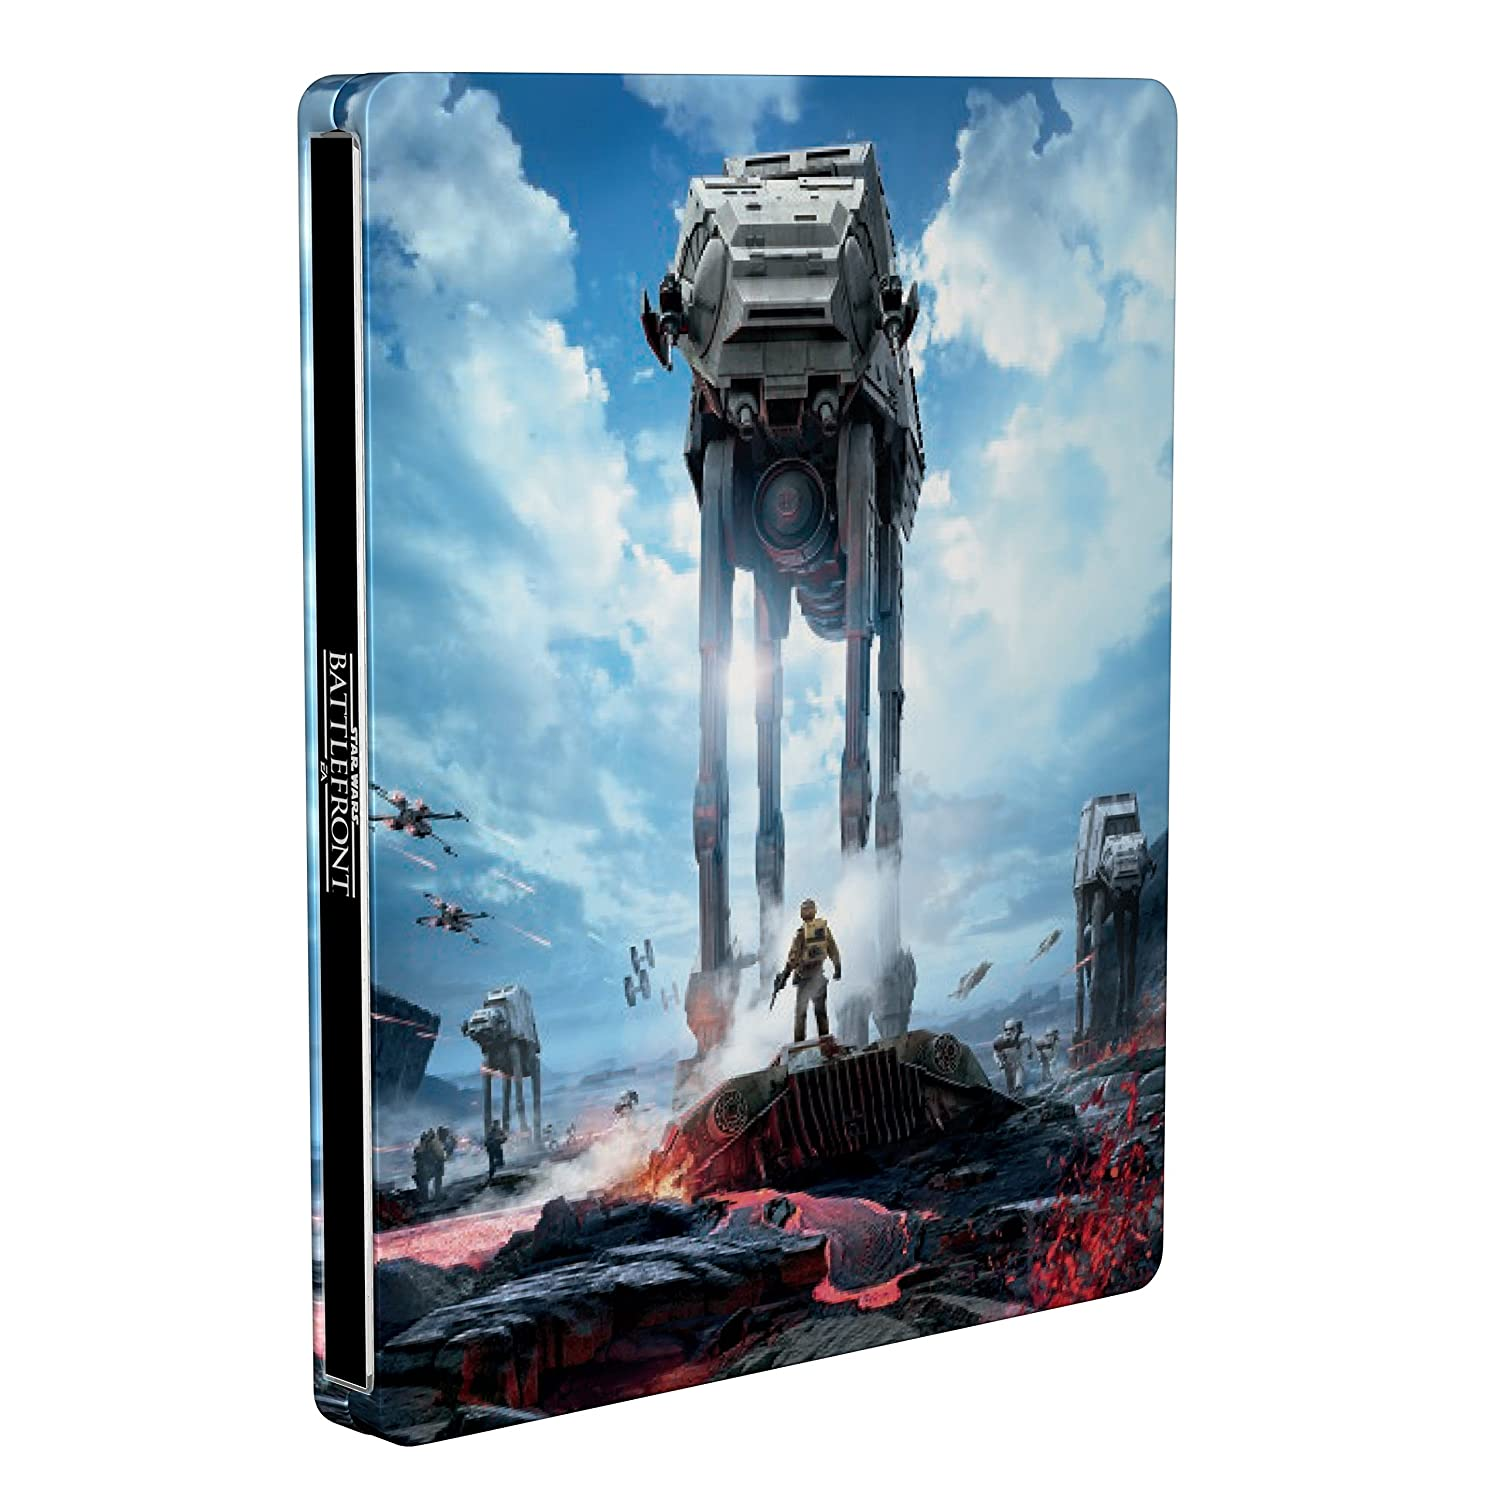 Star Wars: Battlefront & SteelBook (Amazon Exclusive) - PC